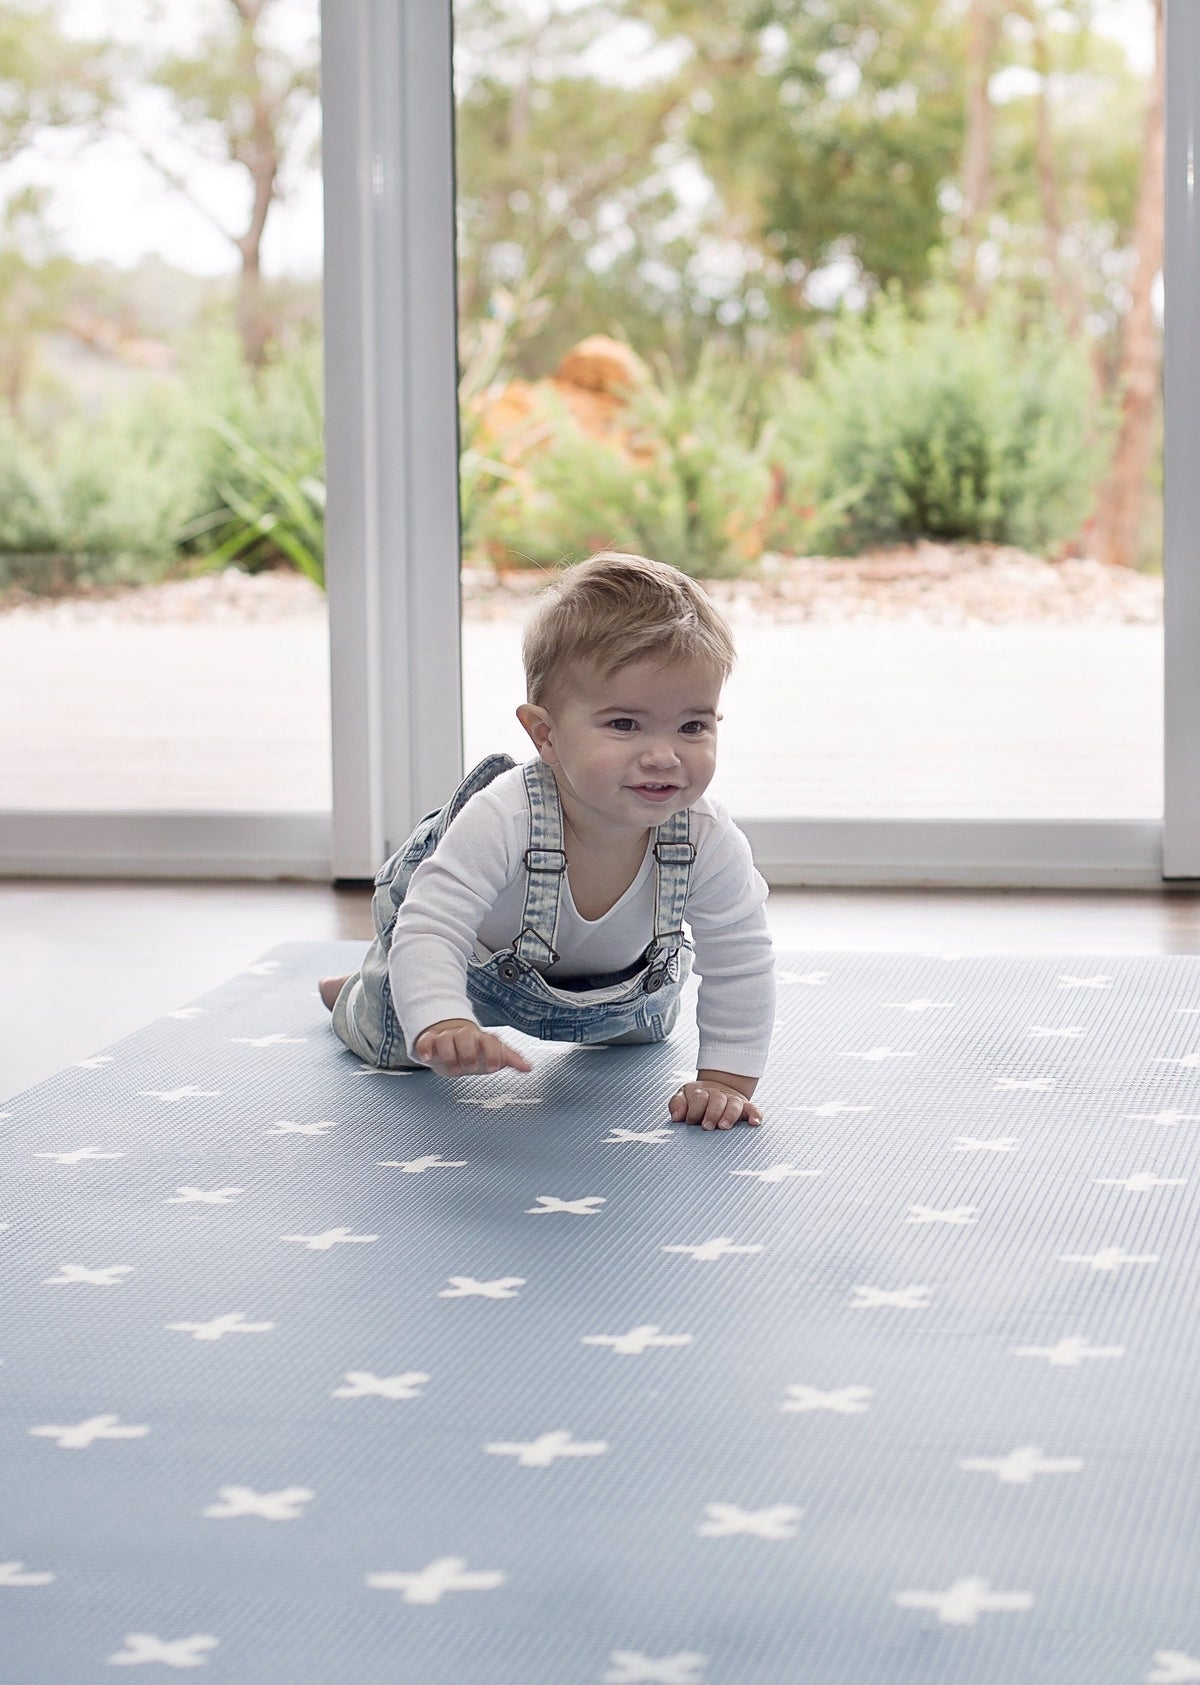 mats for learning to roll, crawl and sit. Protect babys head from the hard floors with a squishy padded play mat!